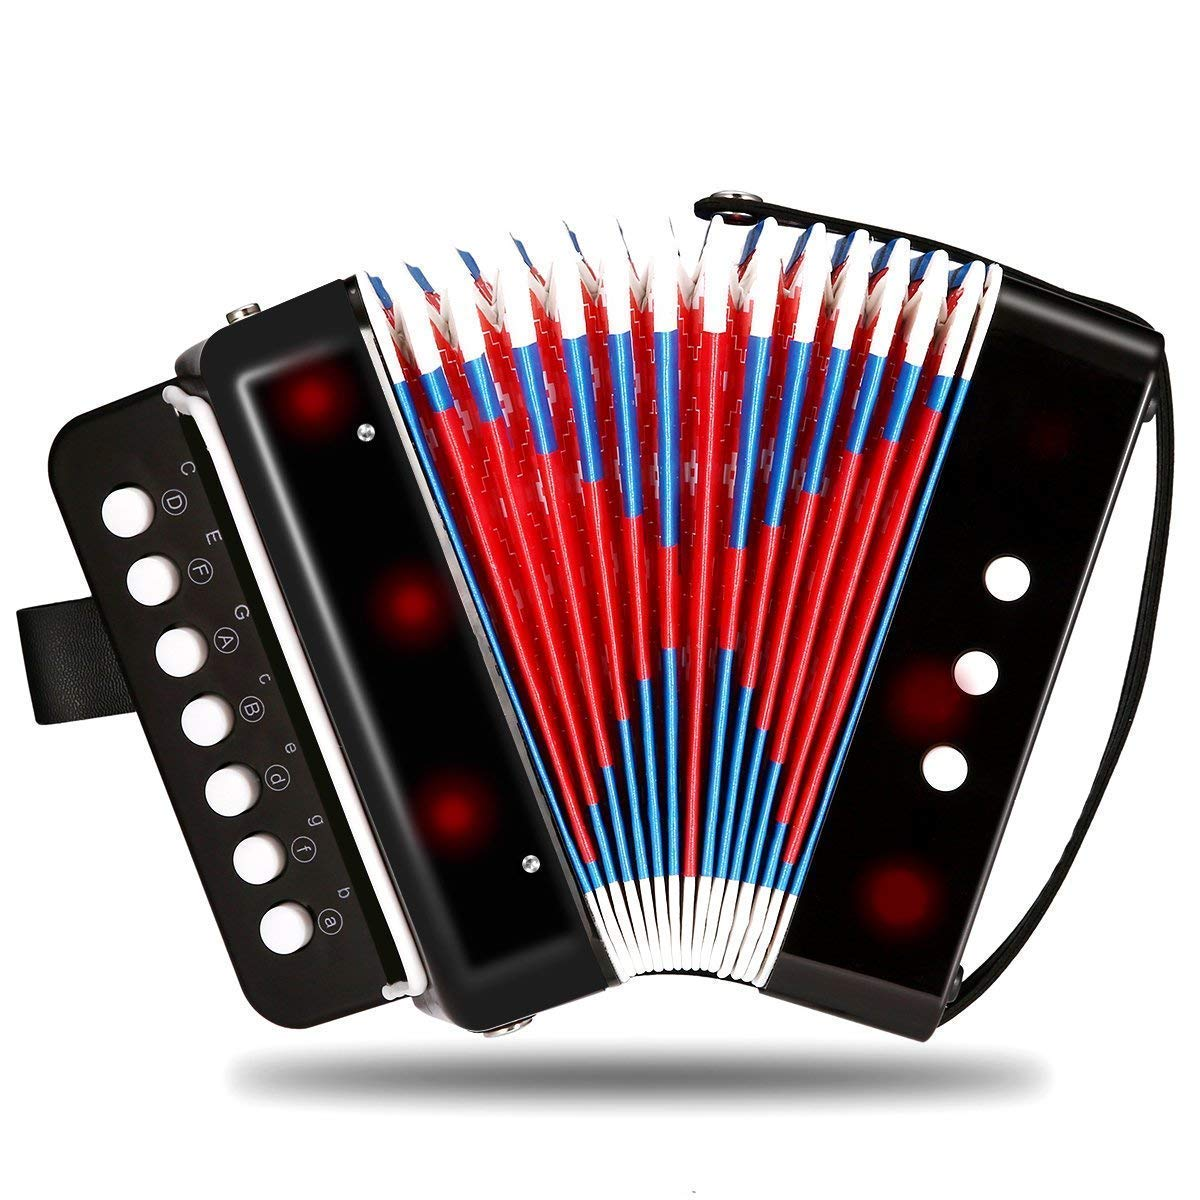 Children Musical Toy Instrument - 7 Keys 2 Bass Kid's Toy Accordion Rhythm Band Toy for Beginner Children Birthday's Gift by DigitalLife (Image #1)